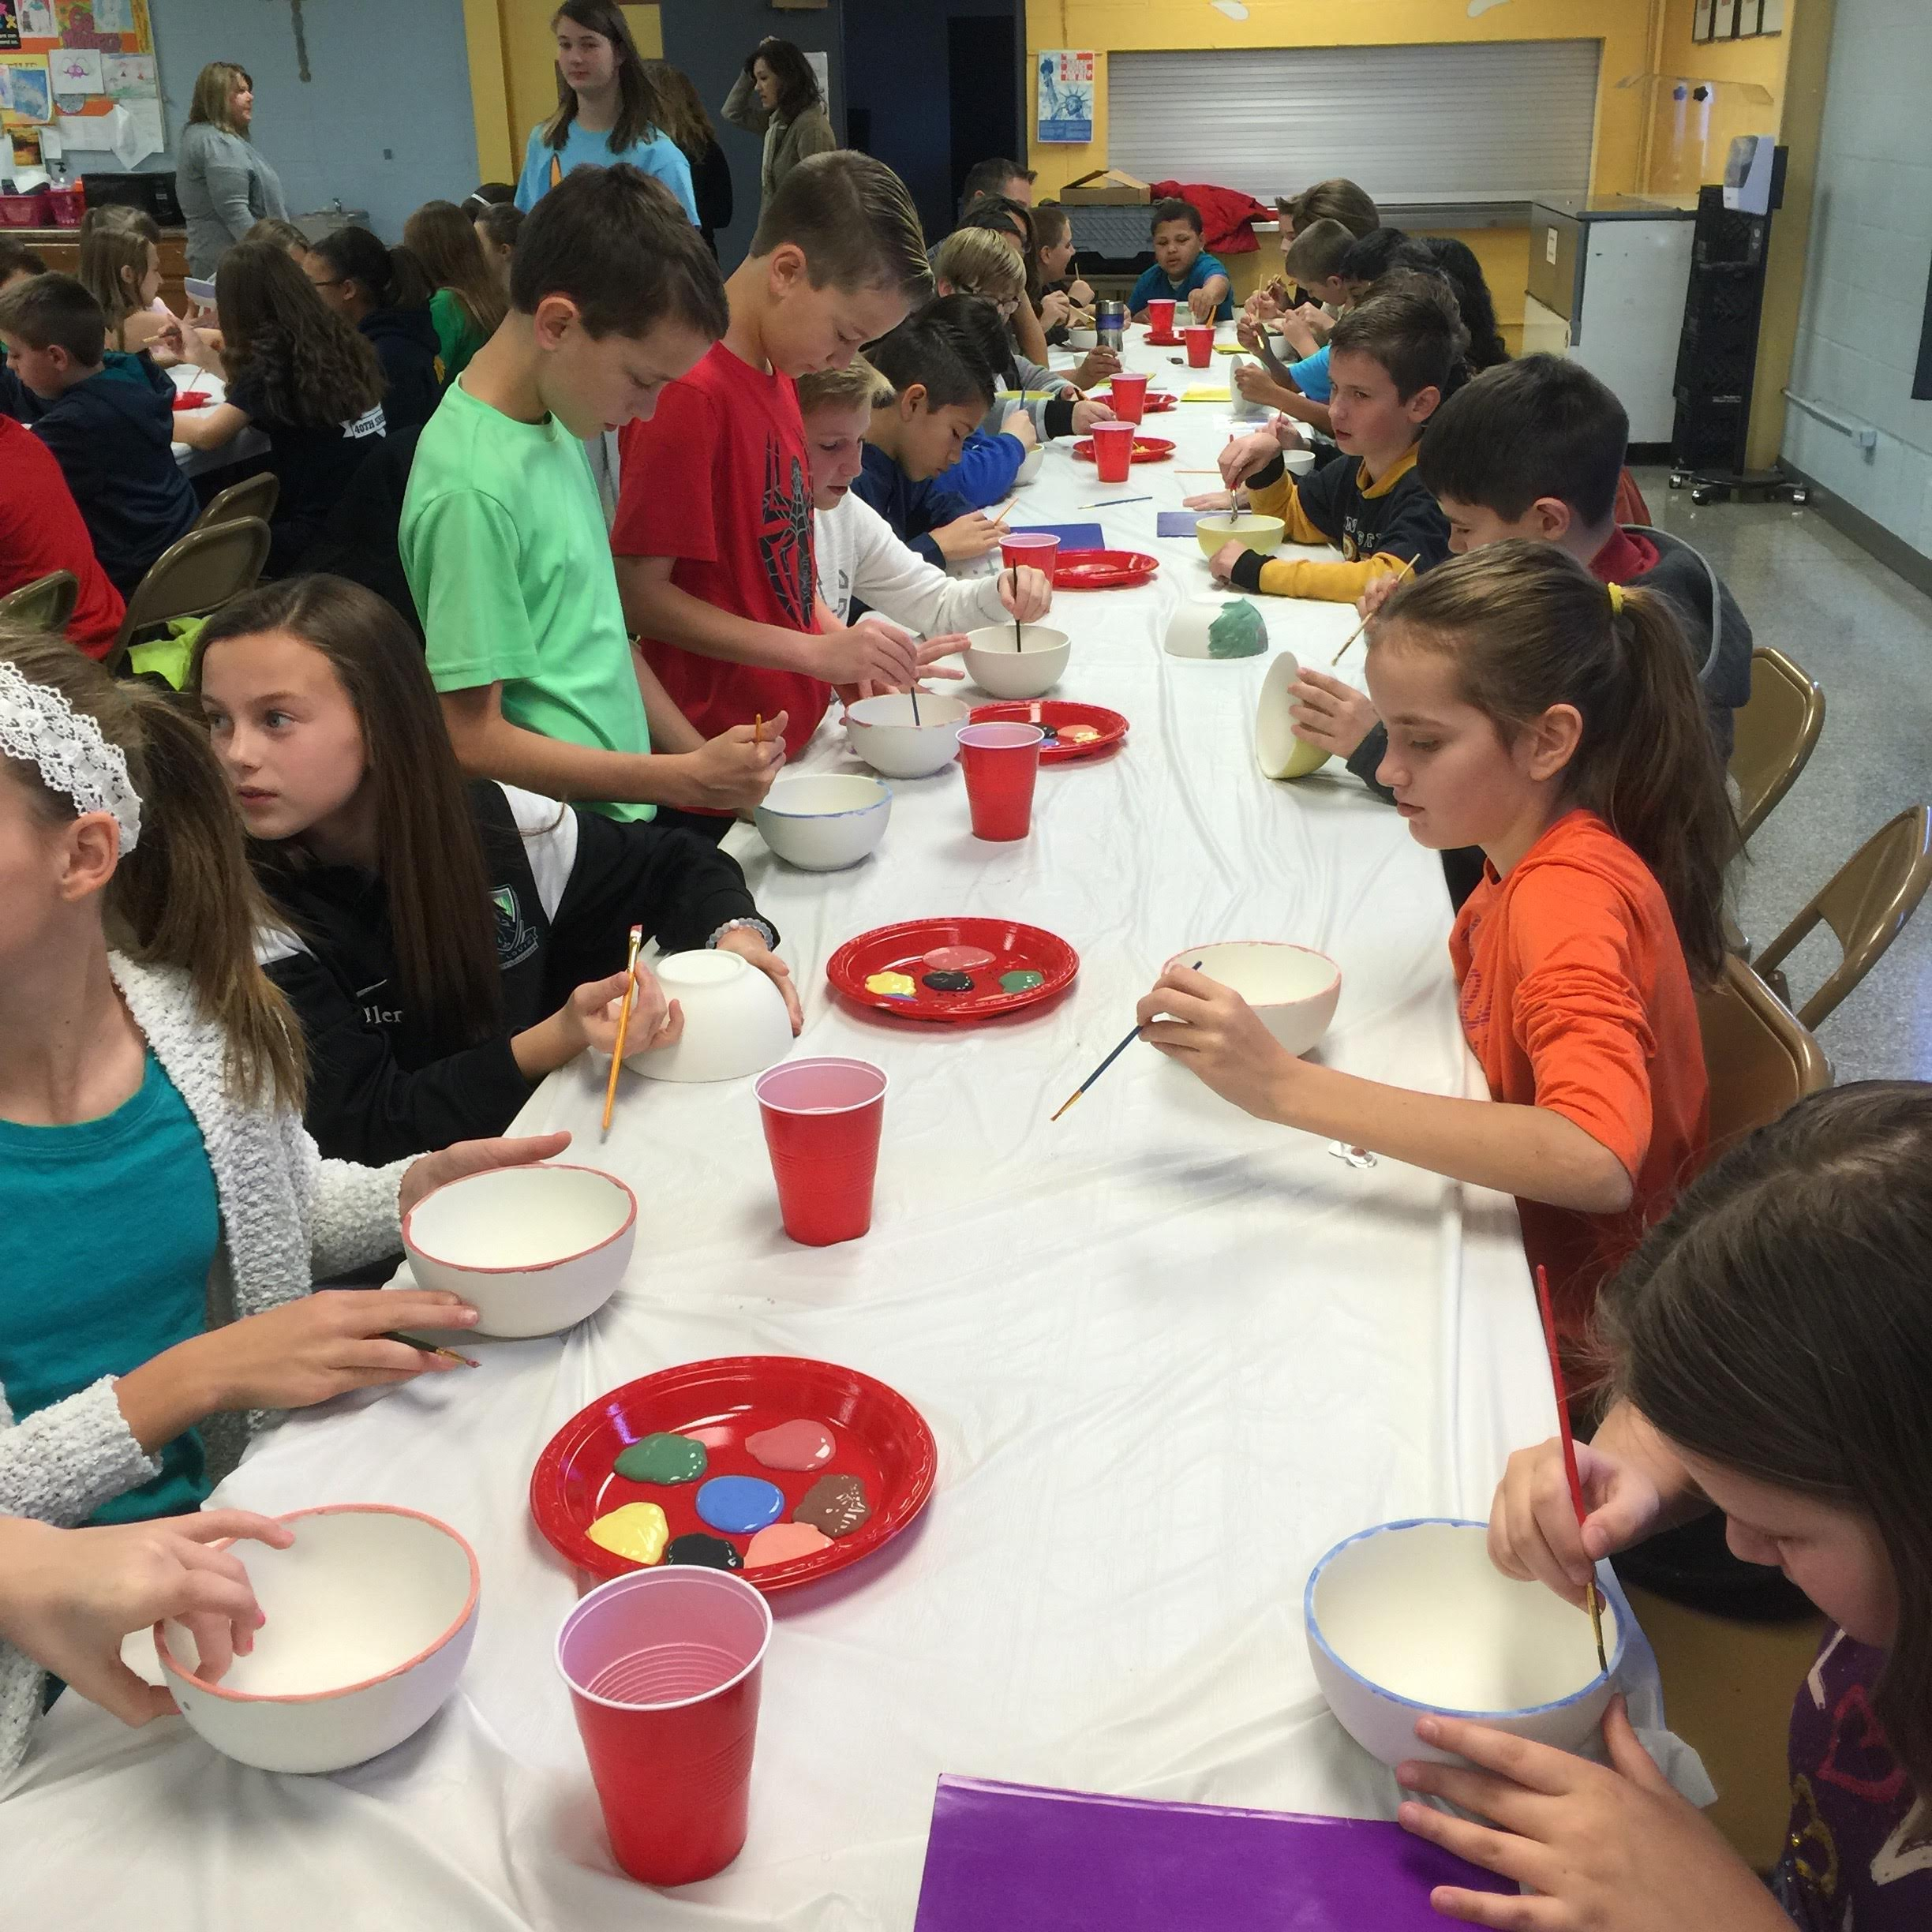 kids painting bowls